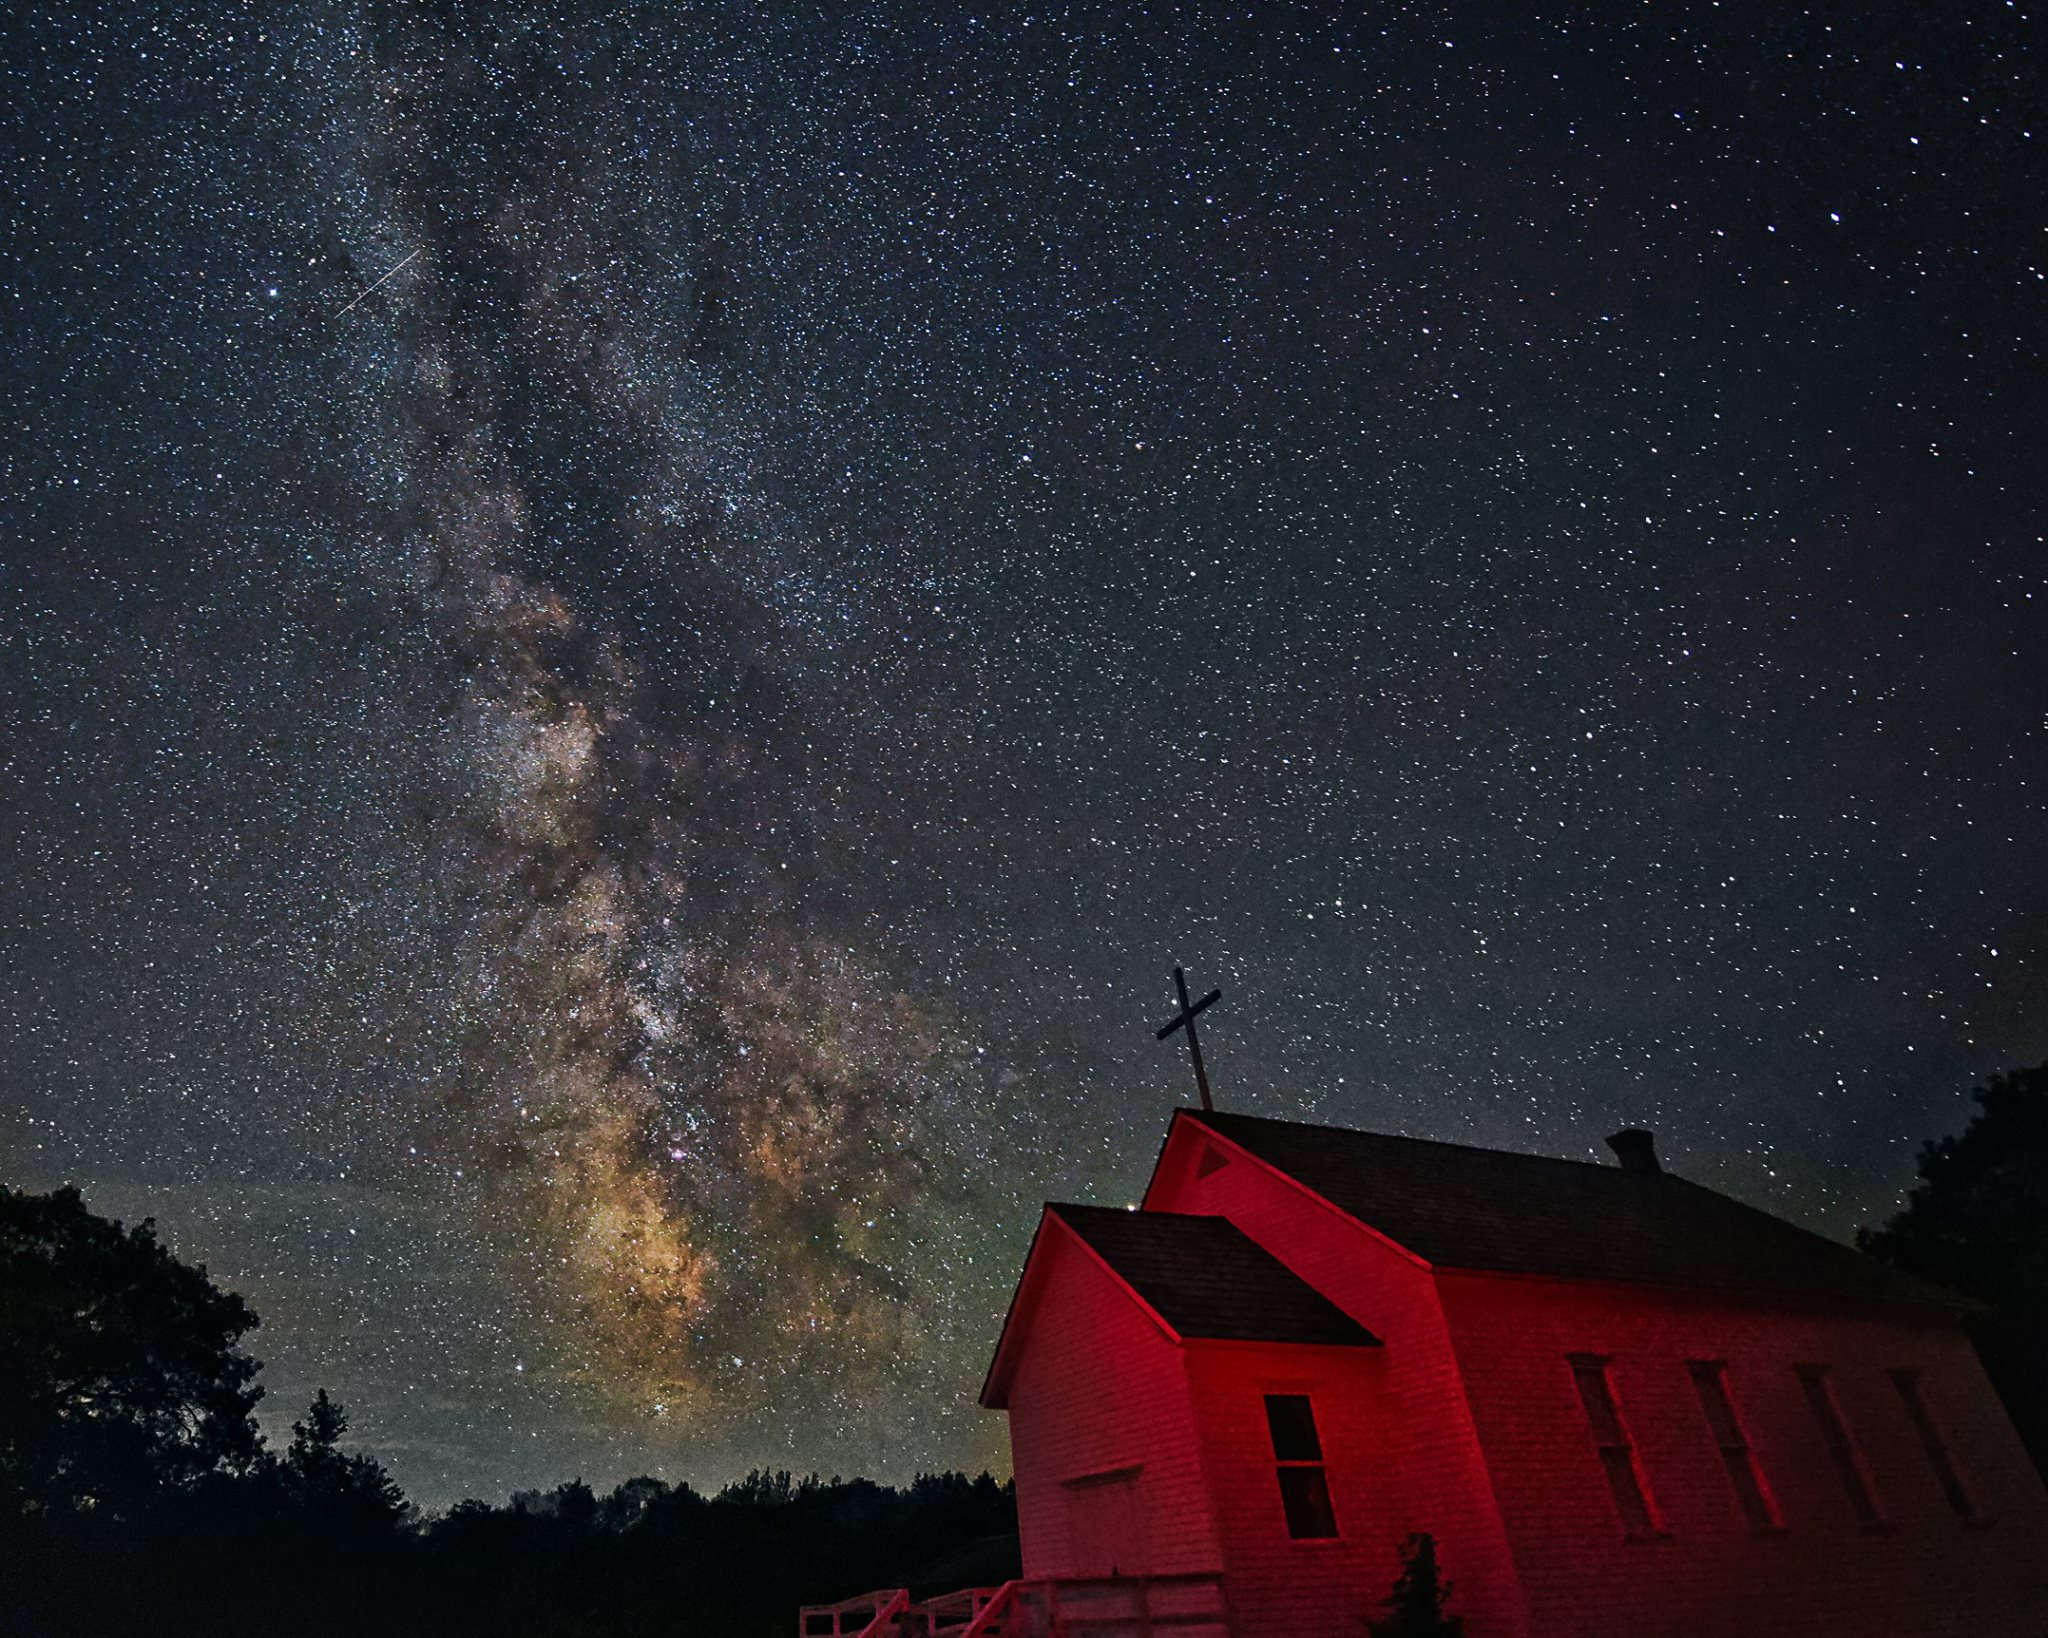 Milky Way - Church